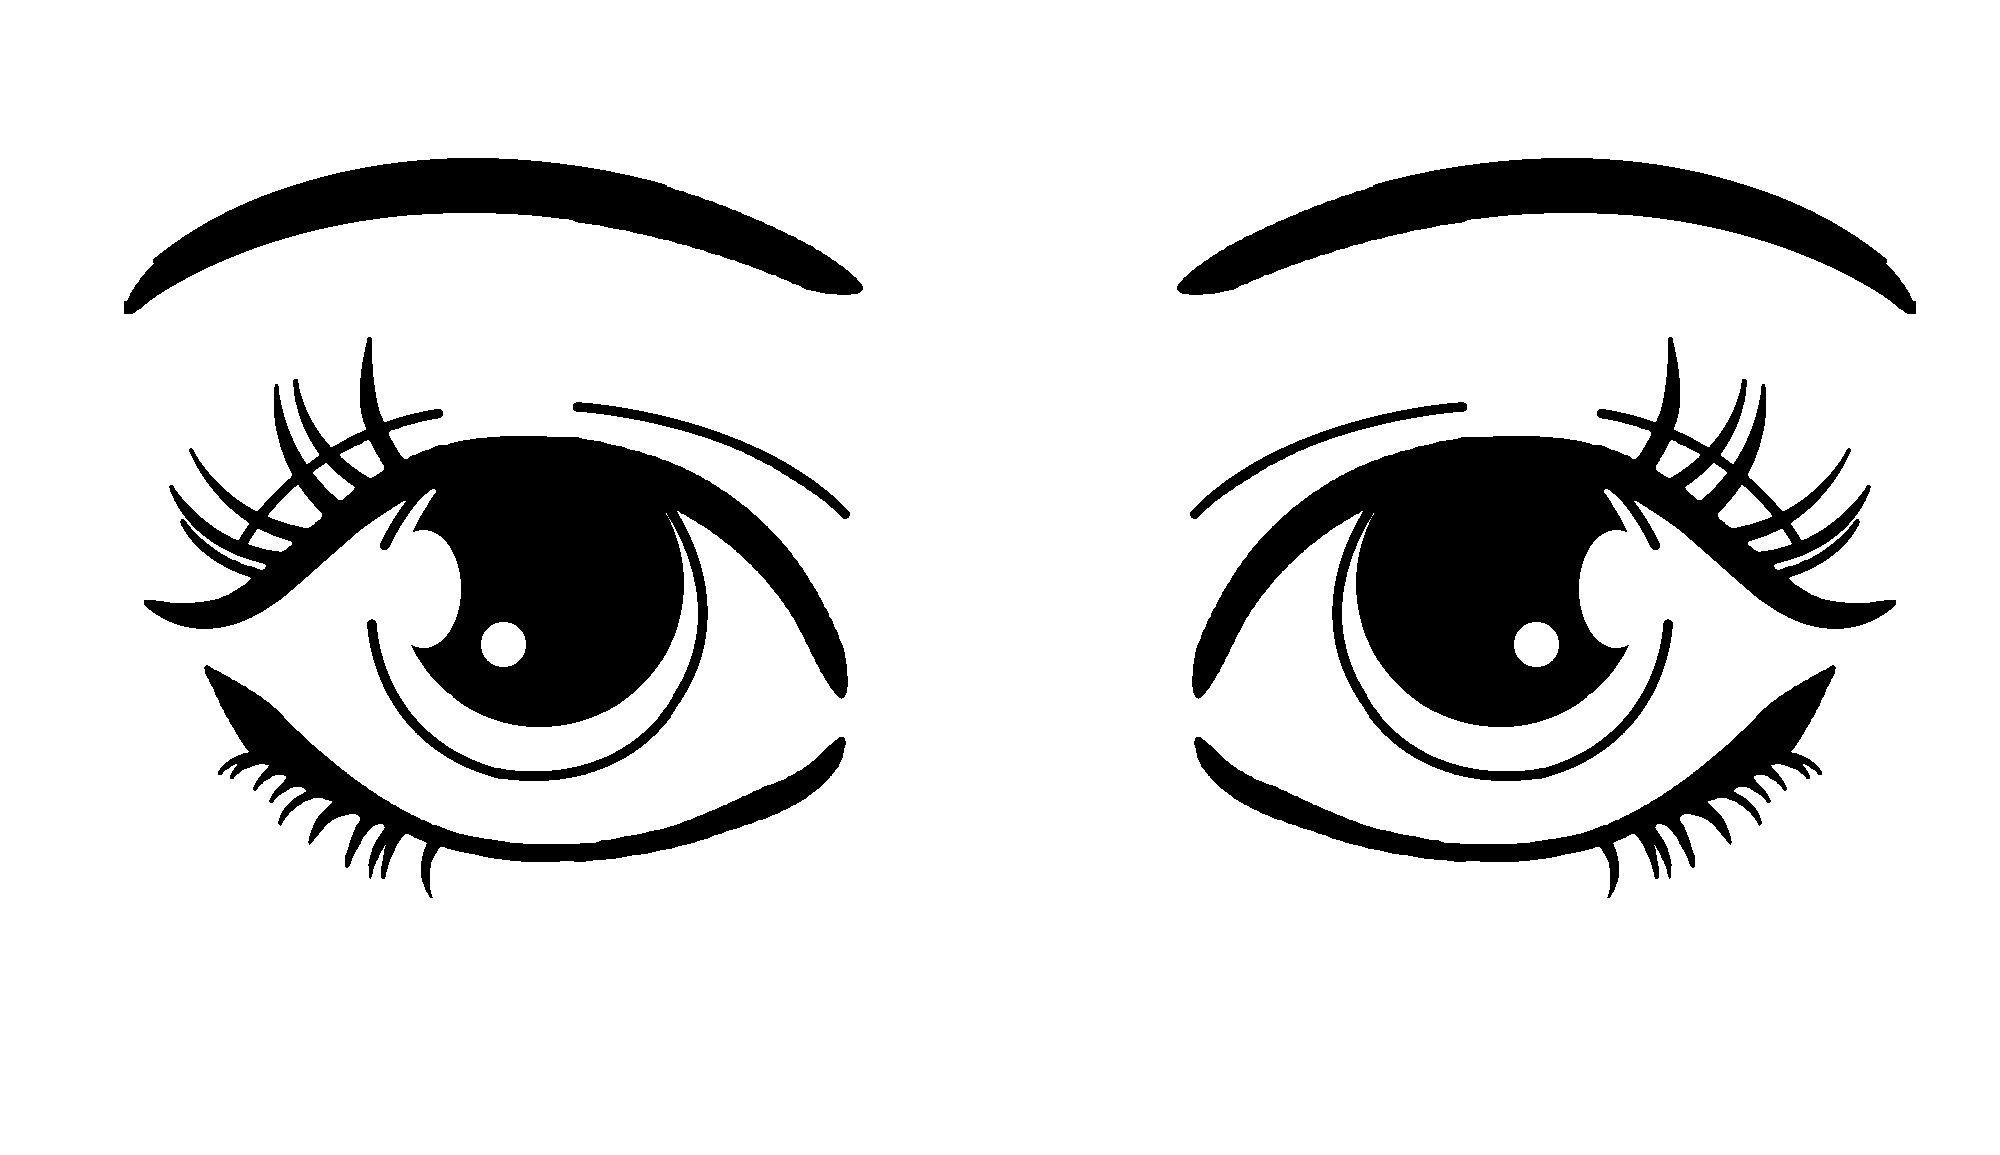 Eyeball clipart vigilant. Free cartoon eyeballs cliparts